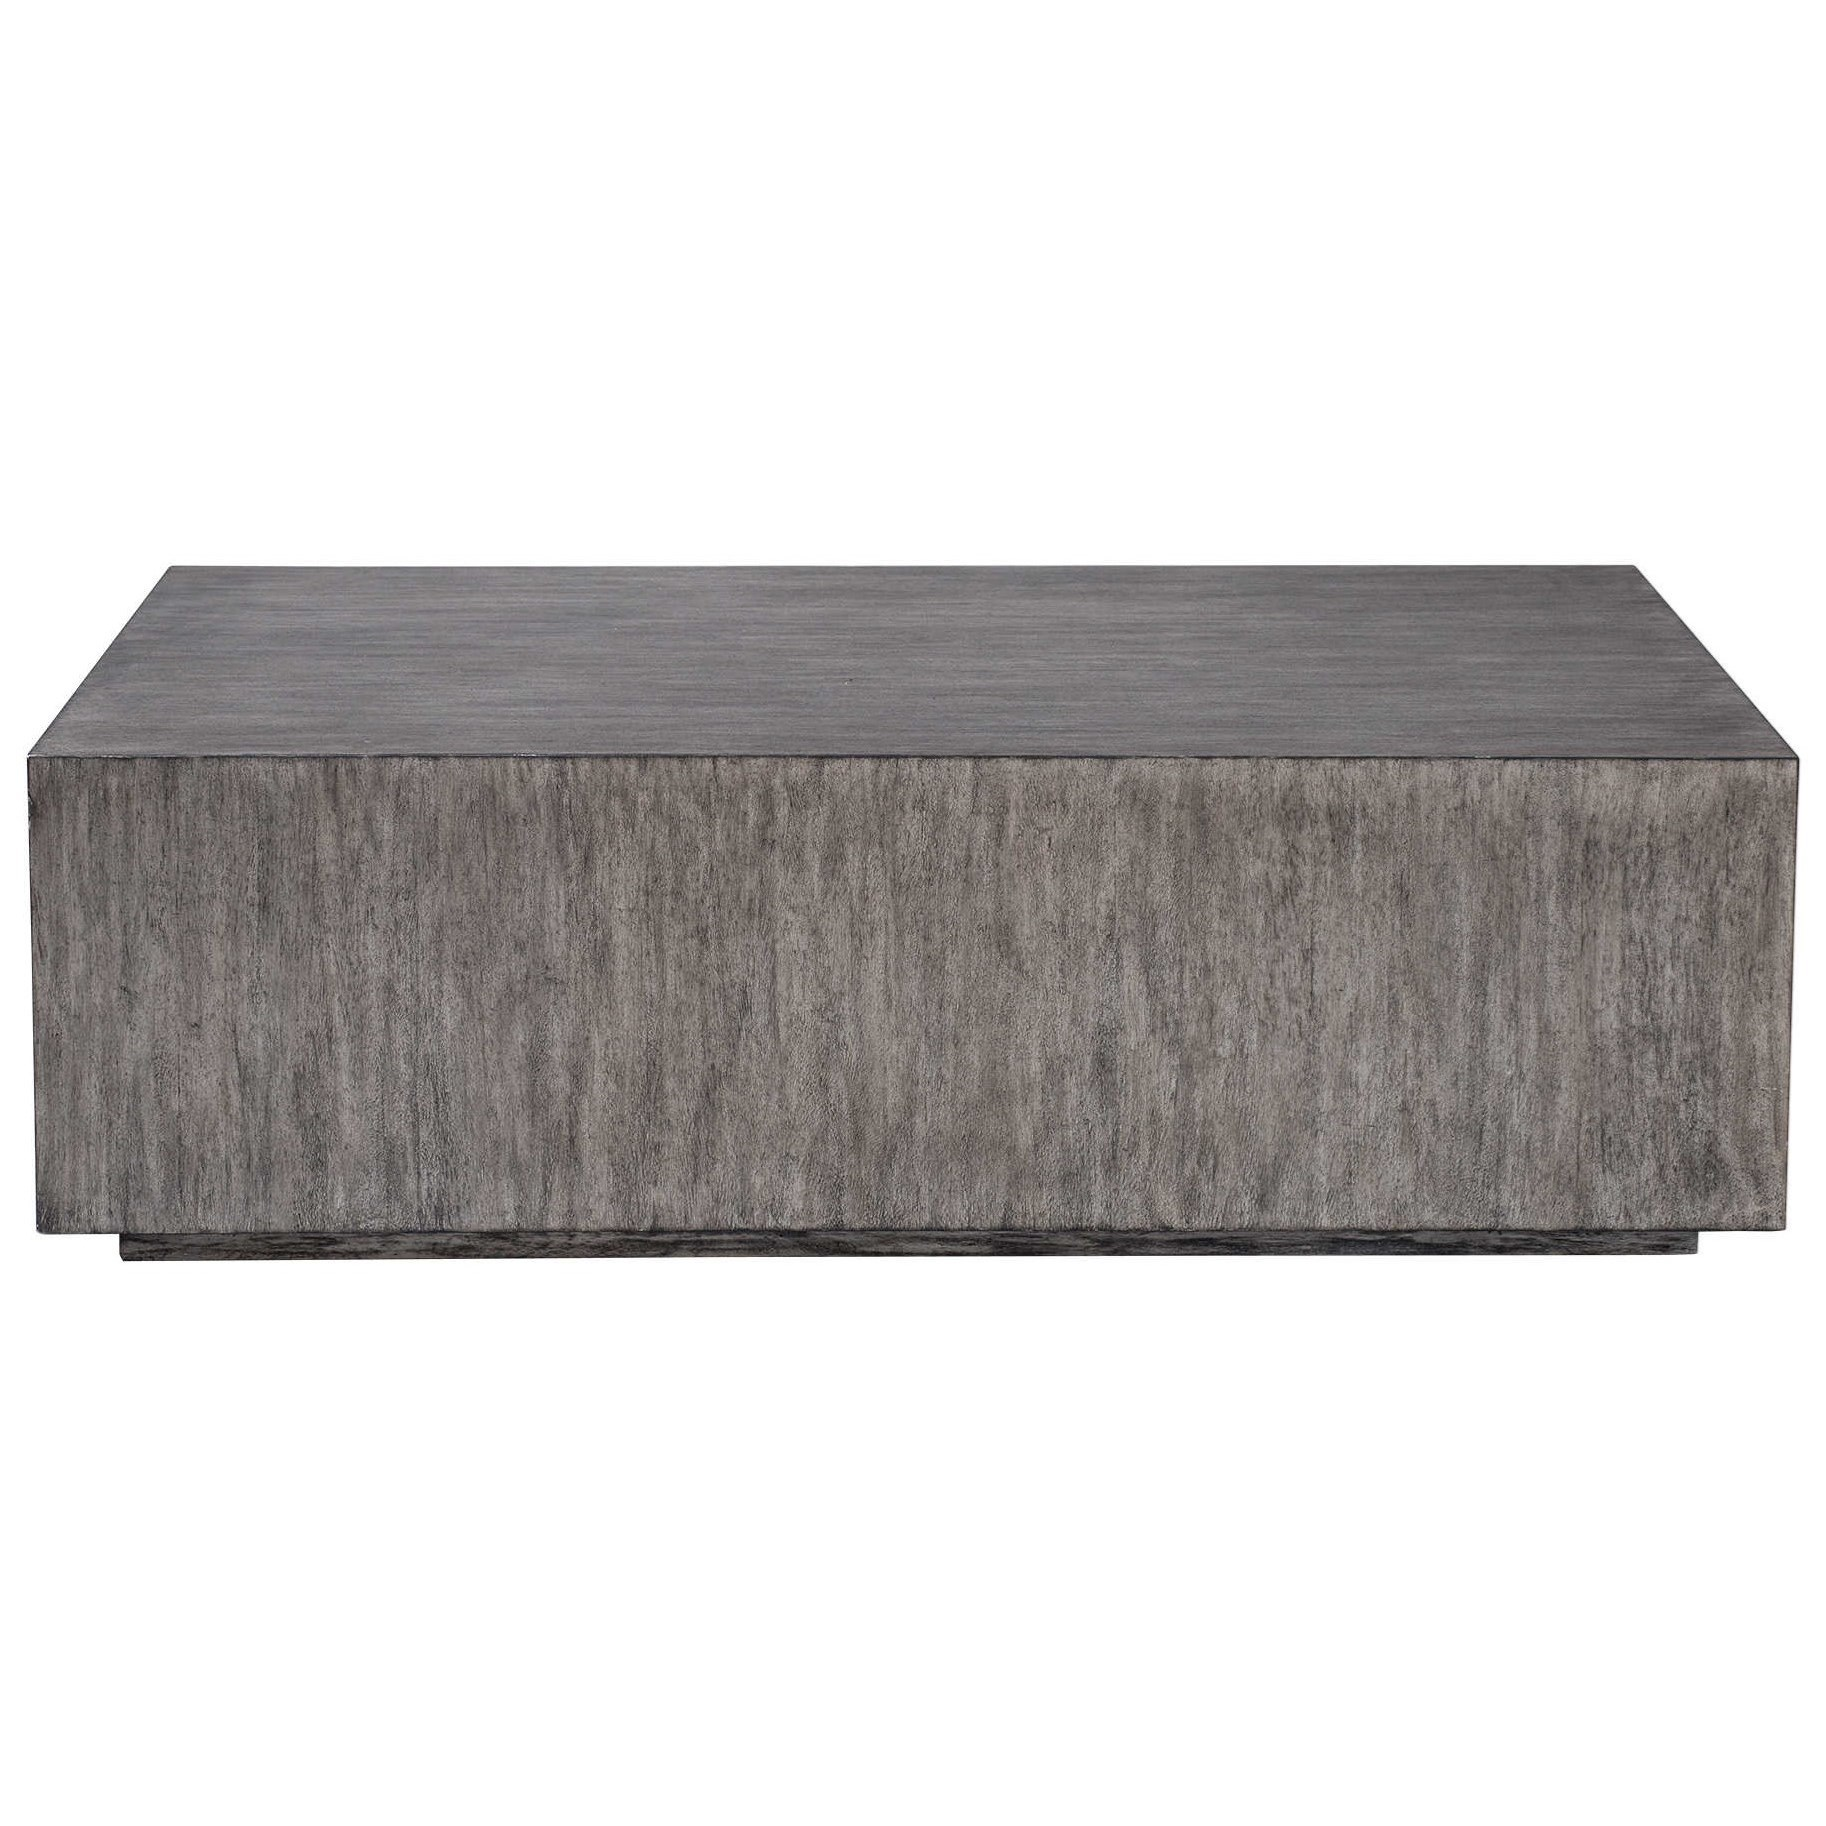 Accent Furniture - Occasional Tables Kareem Modern Gray Coffee Table by Uttermost at Mueller Furniture